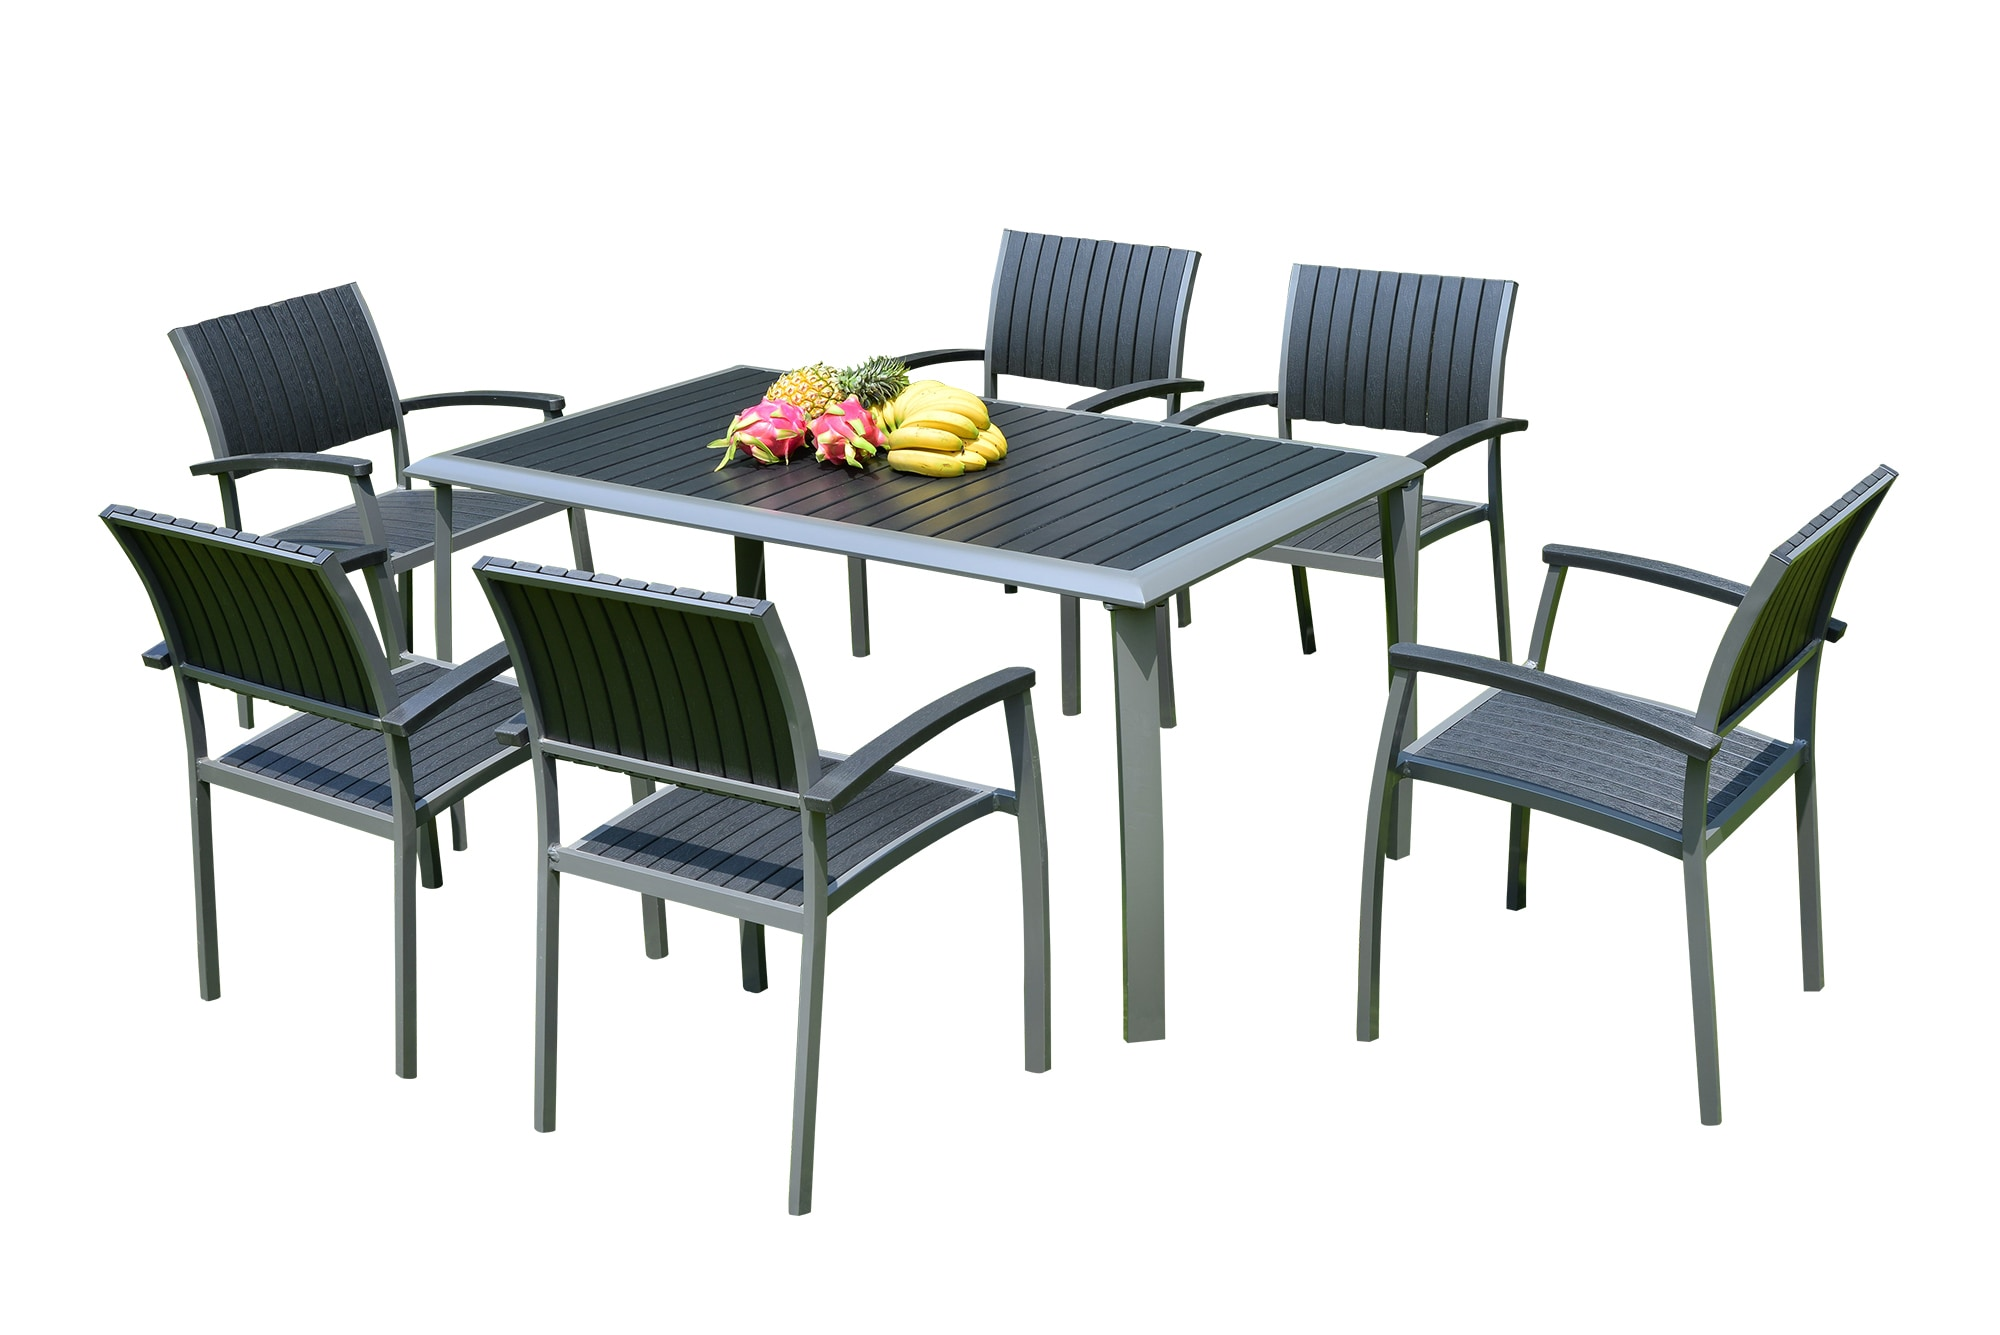 Kontiki dining sets composite medium ideal for 6 seats Synthetic wood patio furniture